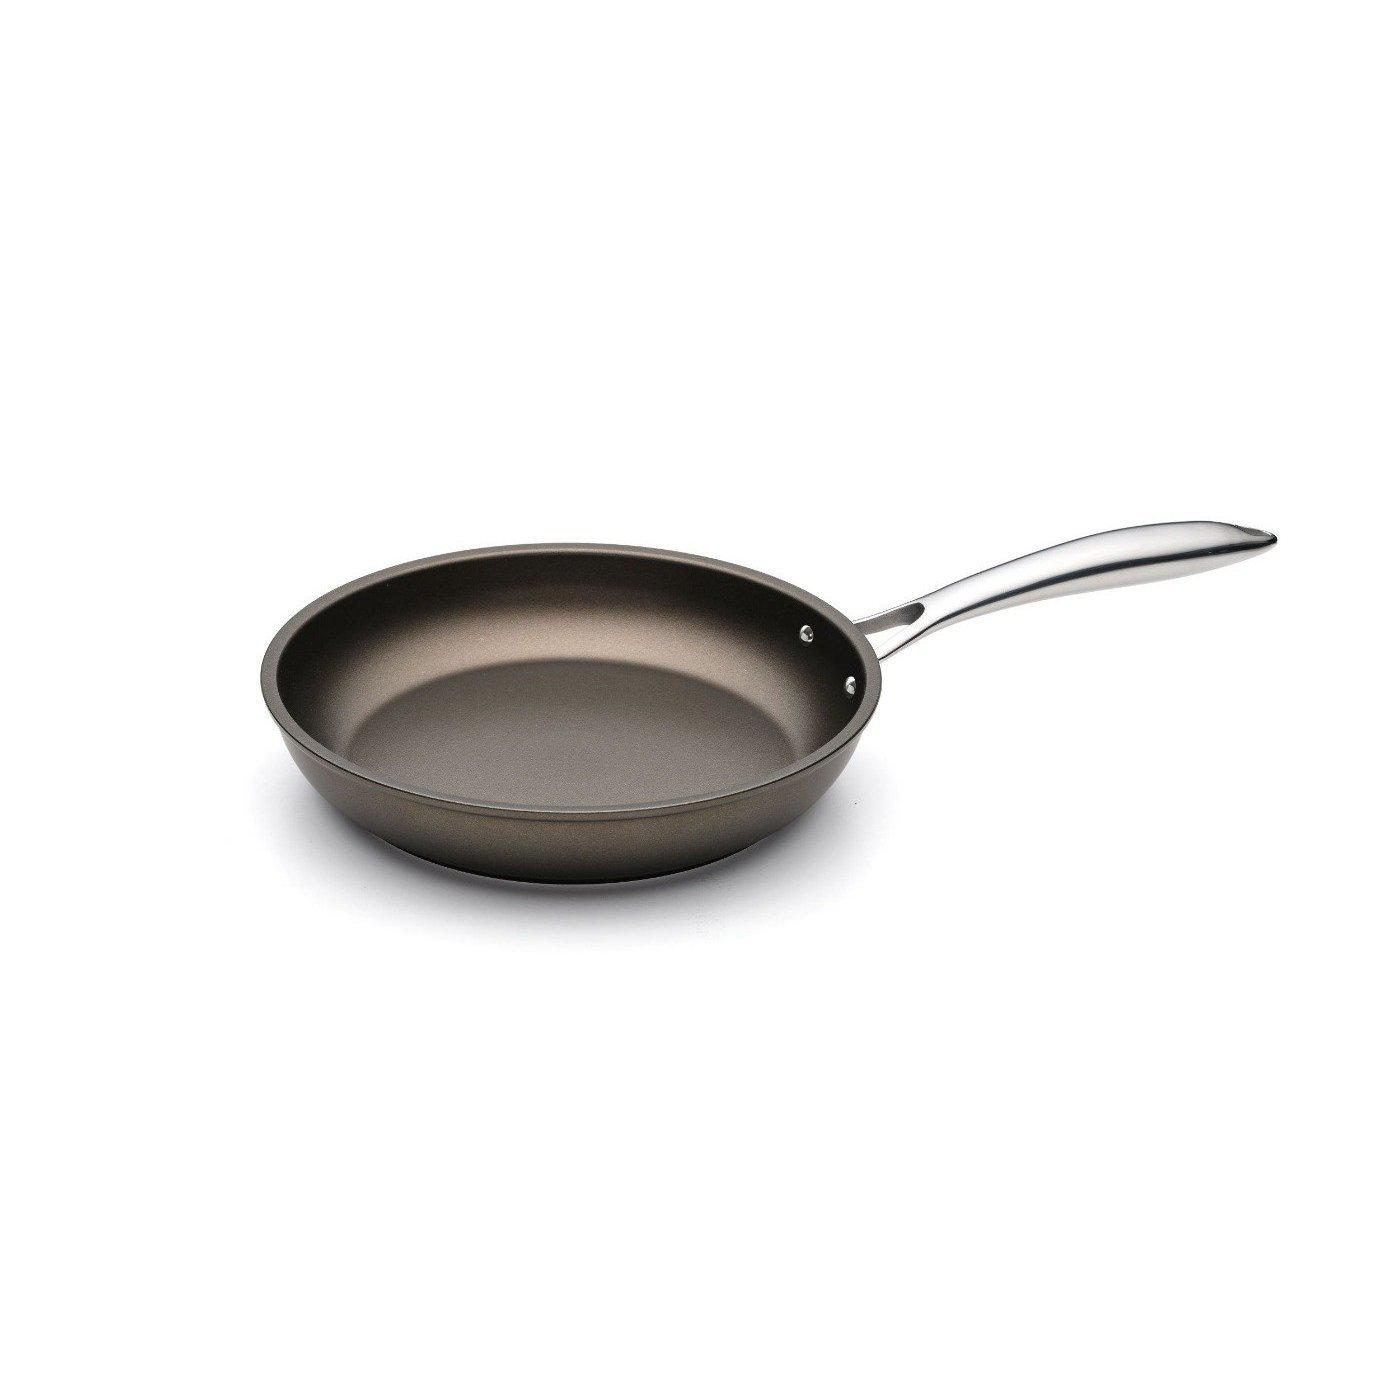 Giannini Vegetalia Evolution Frying Pan 24 cm